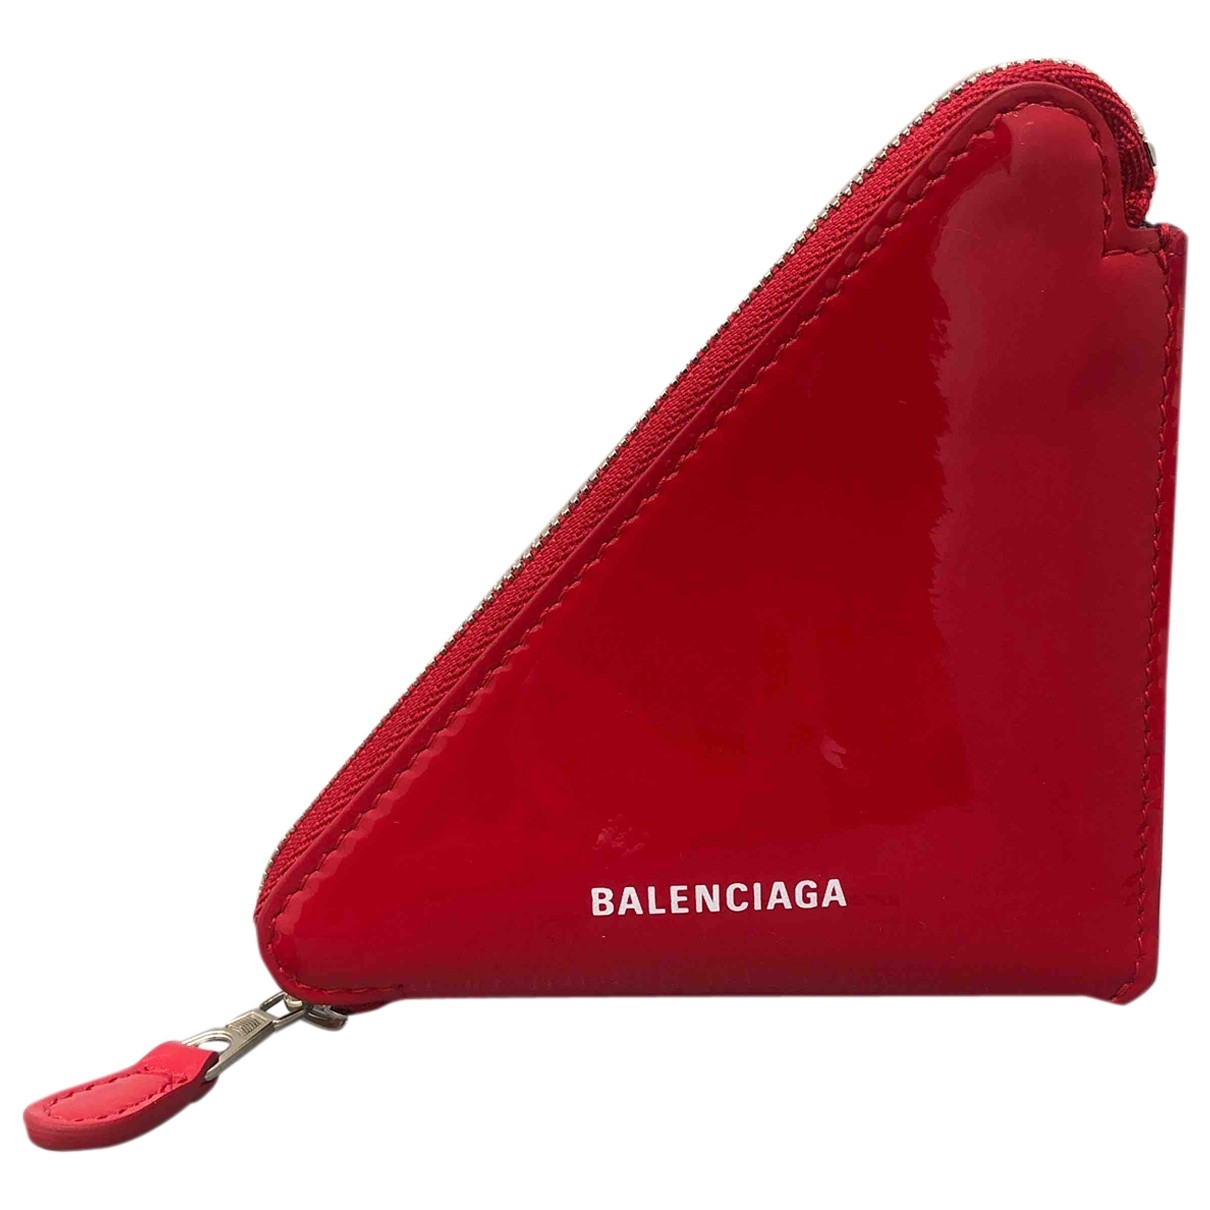 Balenciaga \N Red Patent leather Purses, wallet & cases for Women \N